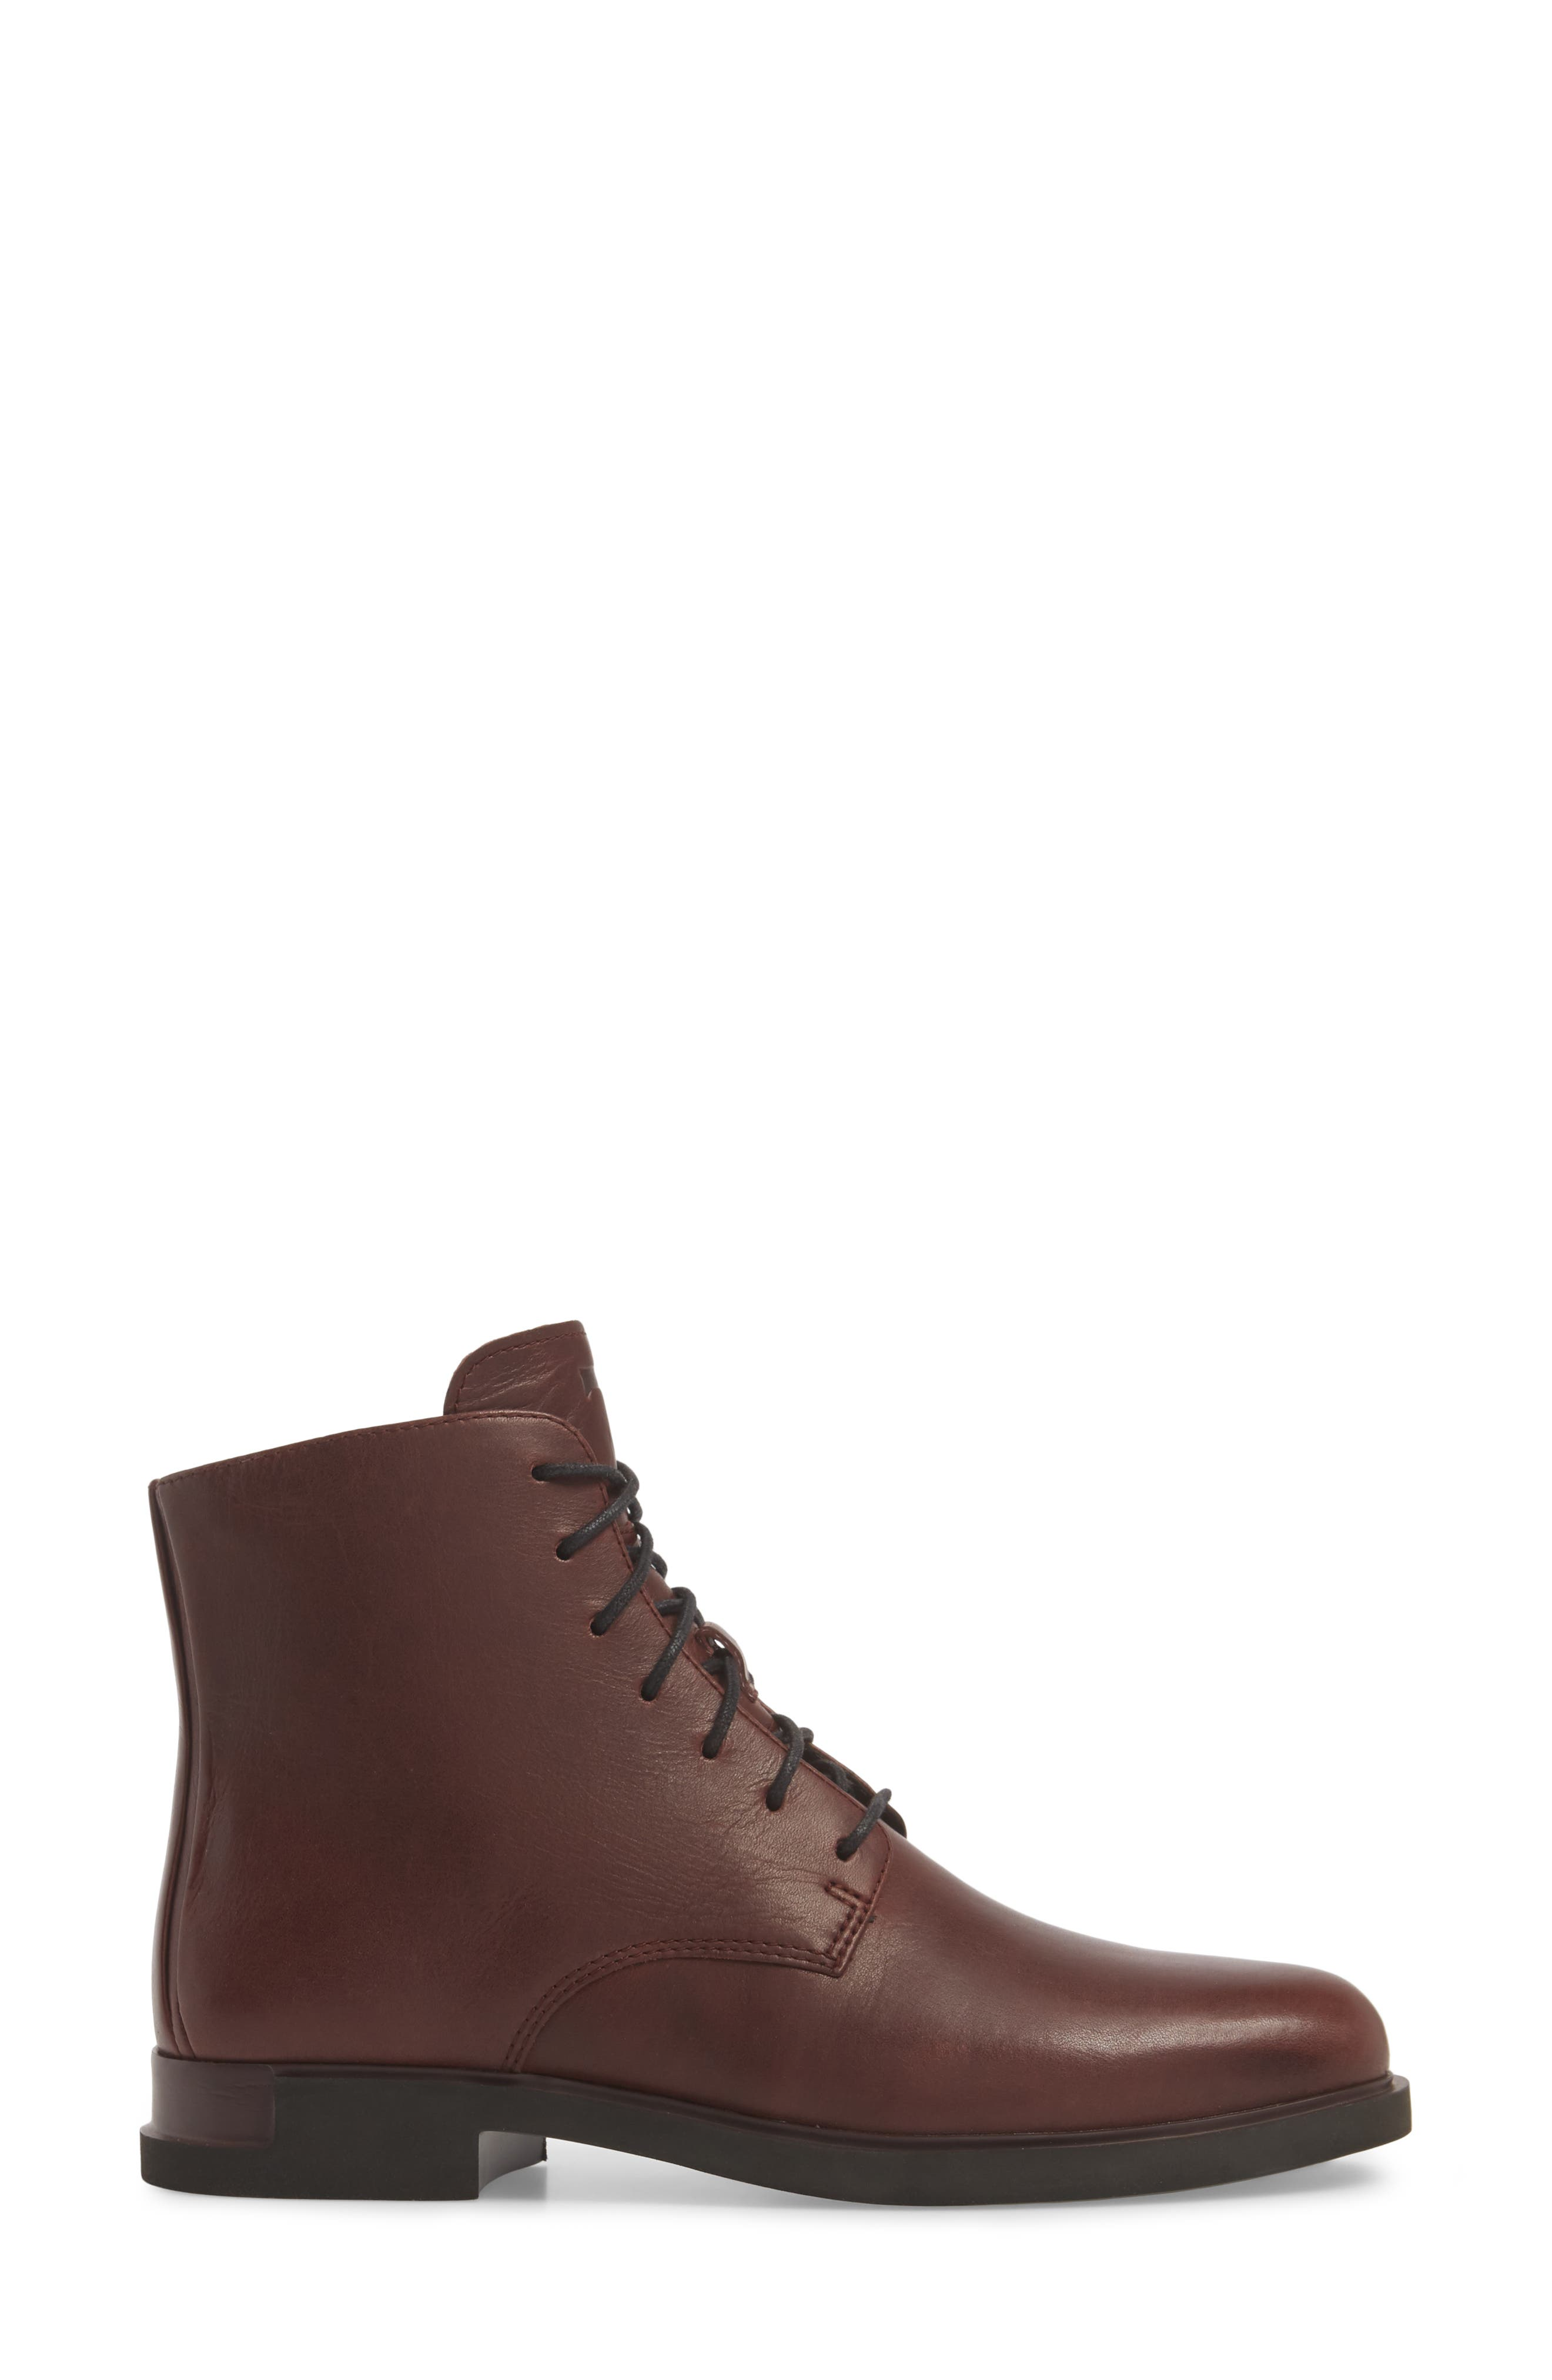 Helix Lace-Up Bootie,                             Alternate thumbnail 3, color,                             BURGUNDY LEATHER